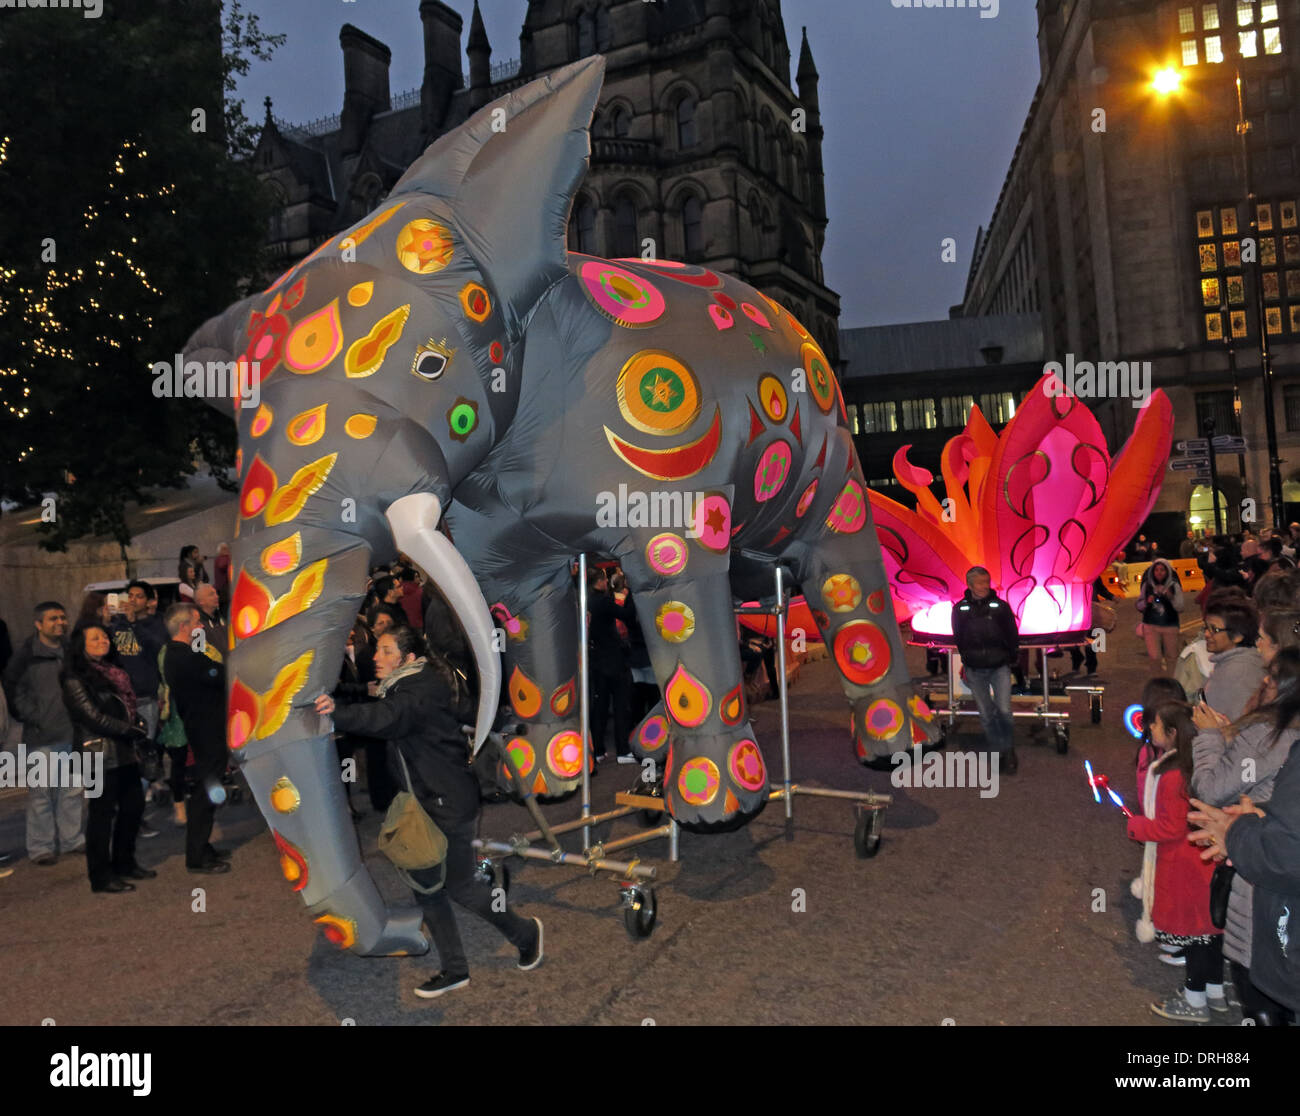 Elephant in the Dashehra Diwali Mela night parade, Manchester City Centre, NW England, UK 12/10/2013 Stock Photo